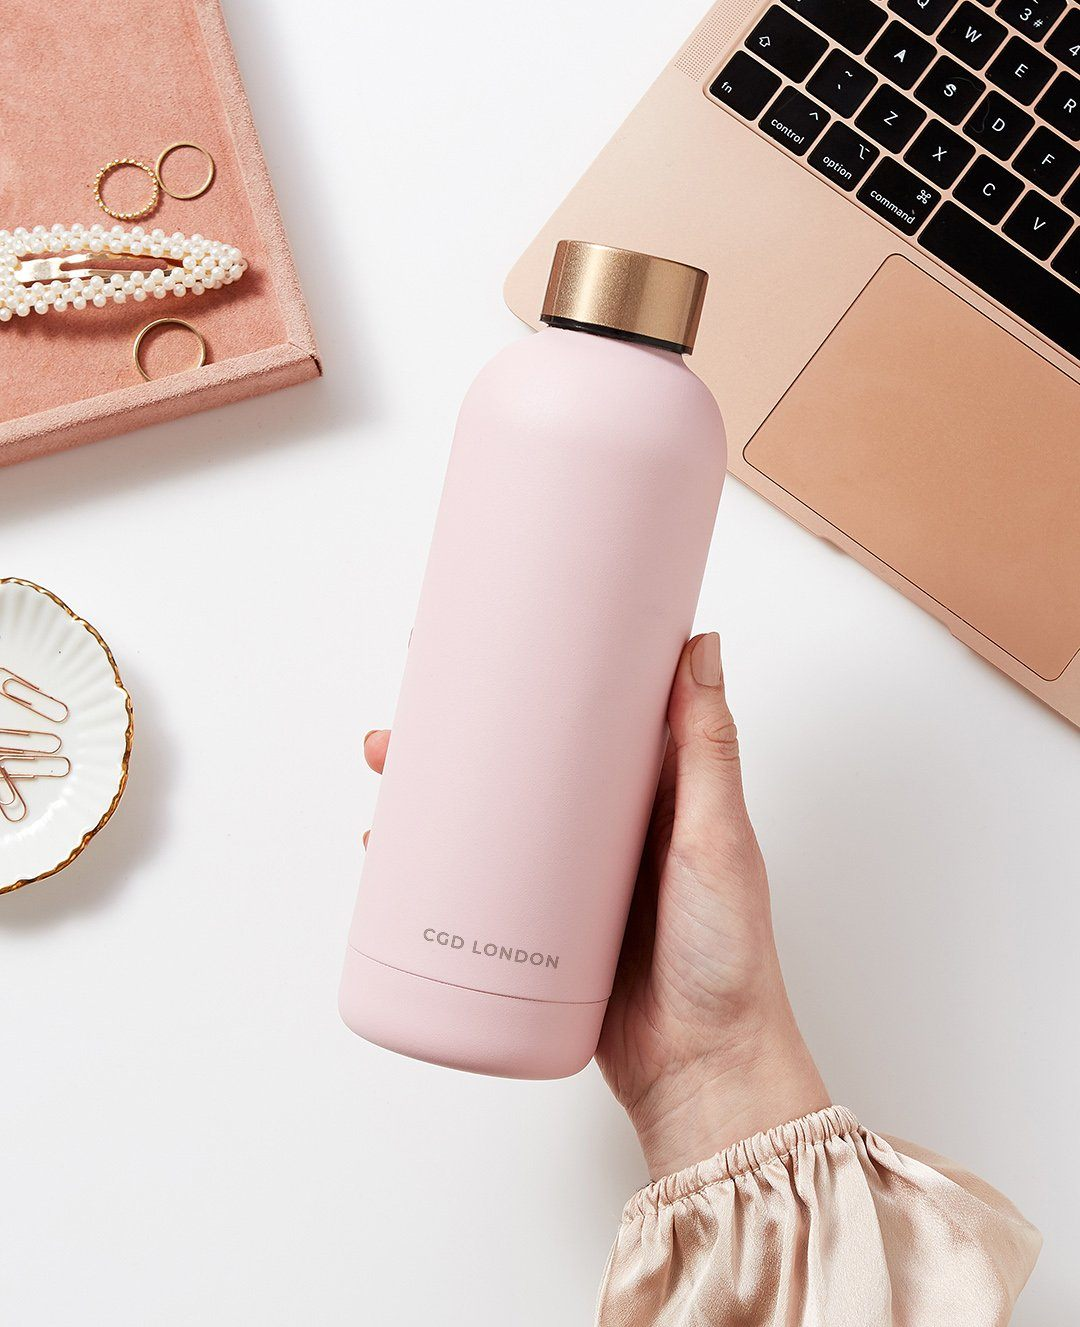 Blush Pink Water Bottle - CGD LONDON